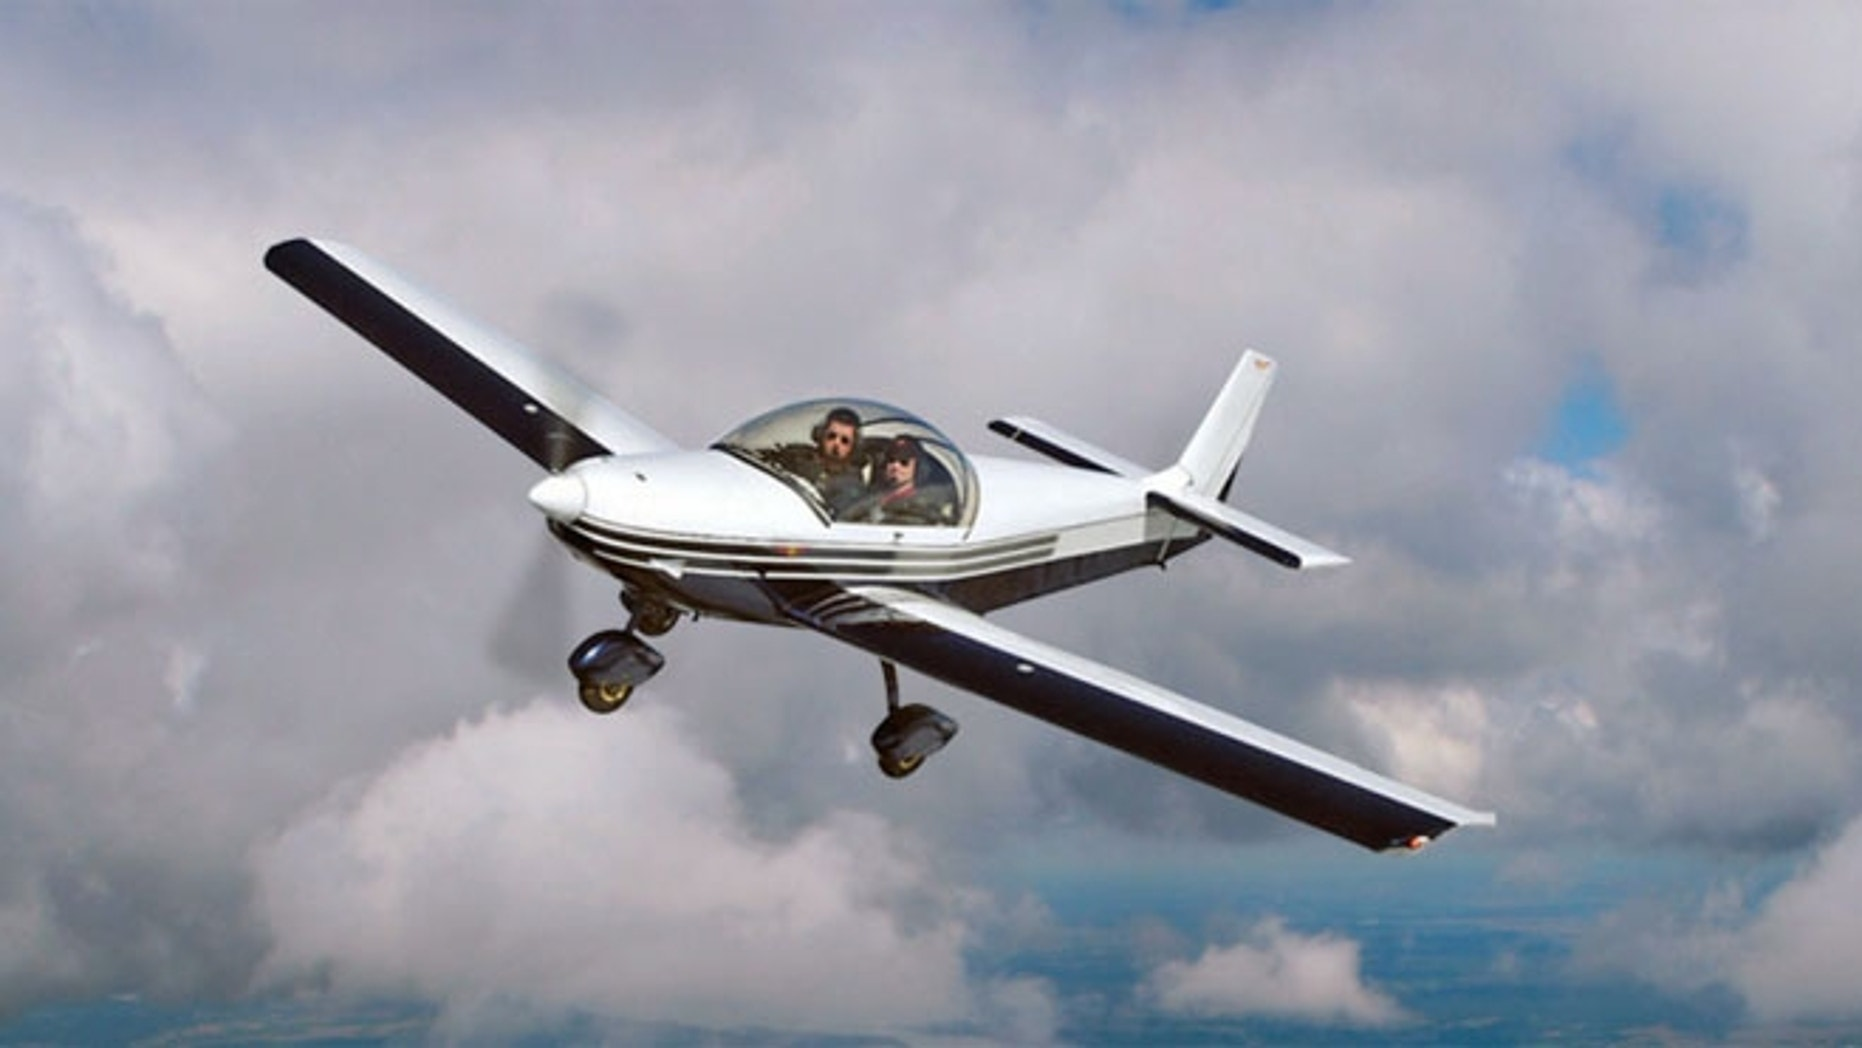 This photo shows a Zodiac 601 aircraft similar to the one involved in Friday's incident.